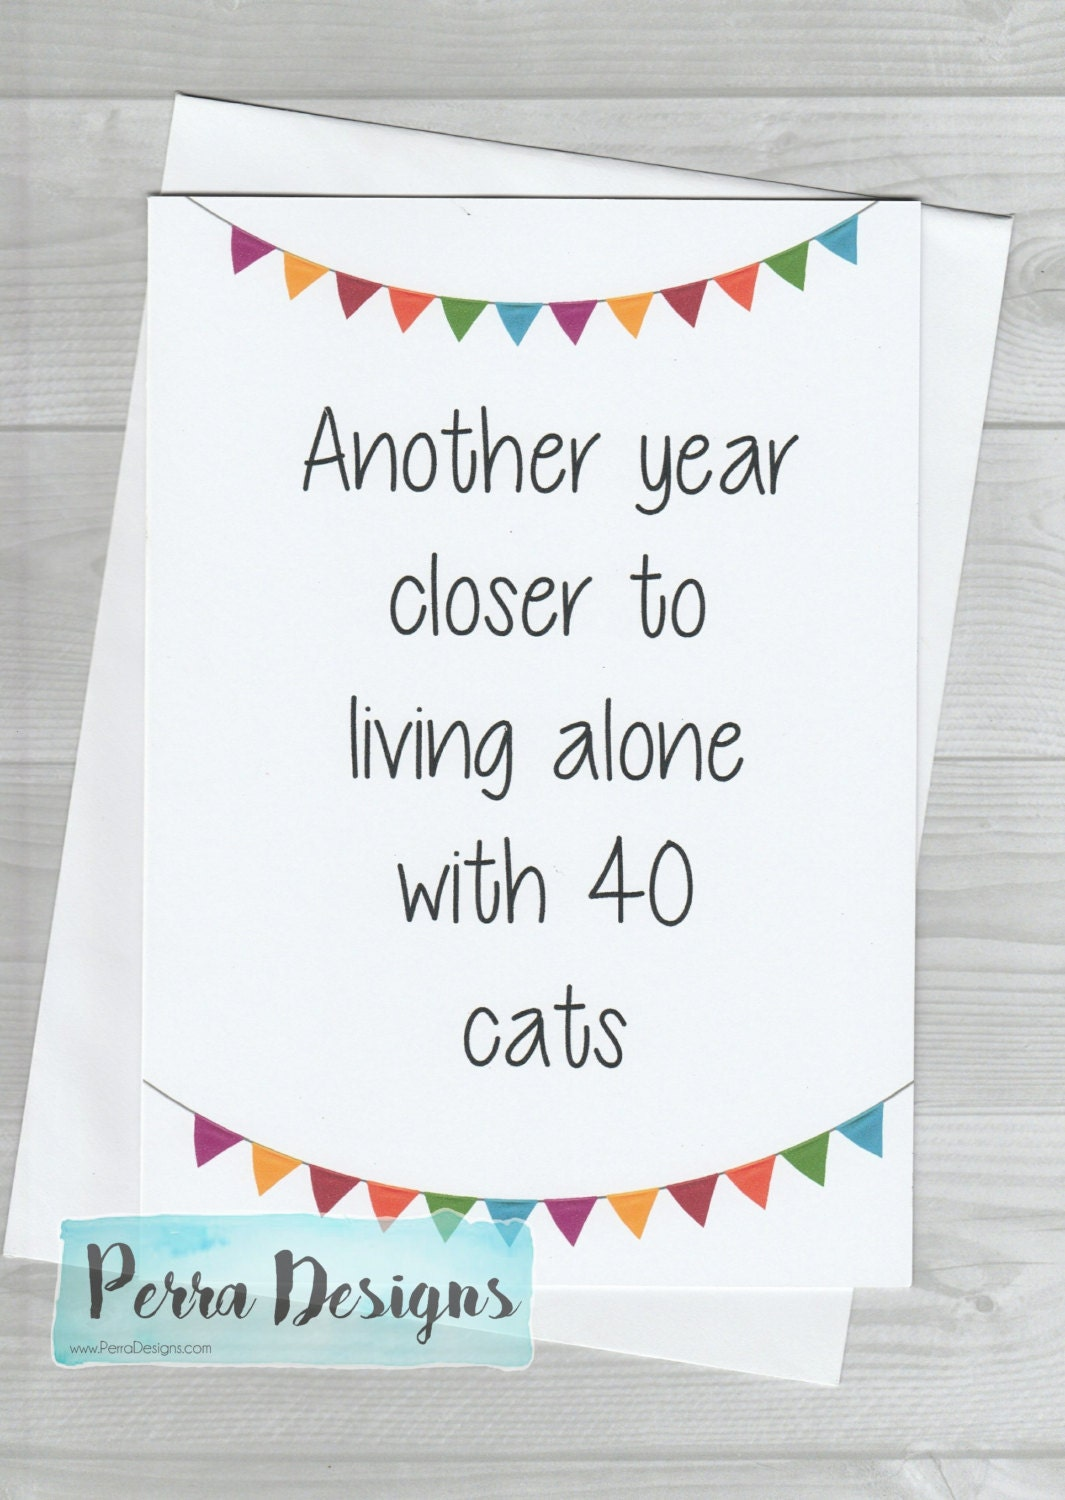 Funny birthday card friend aunt uncle cat lady humour zoom kristyandbryce Image collections